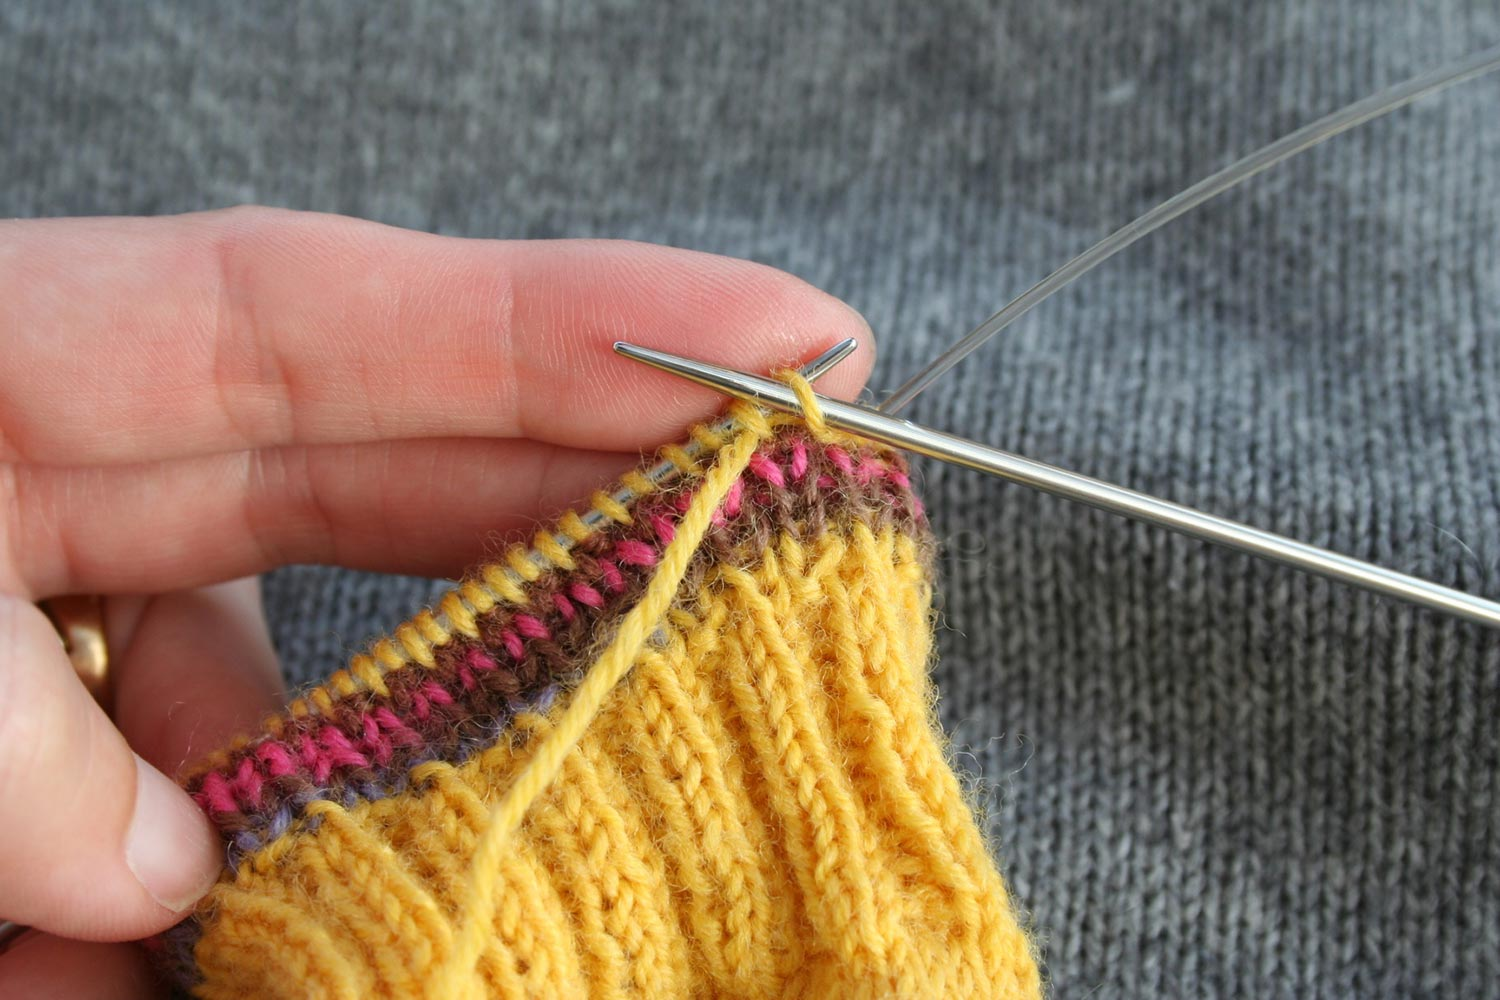 Right needle inserted purlwise through first stitch on left needle; working yarn is coming from the second stitch on the left needle.